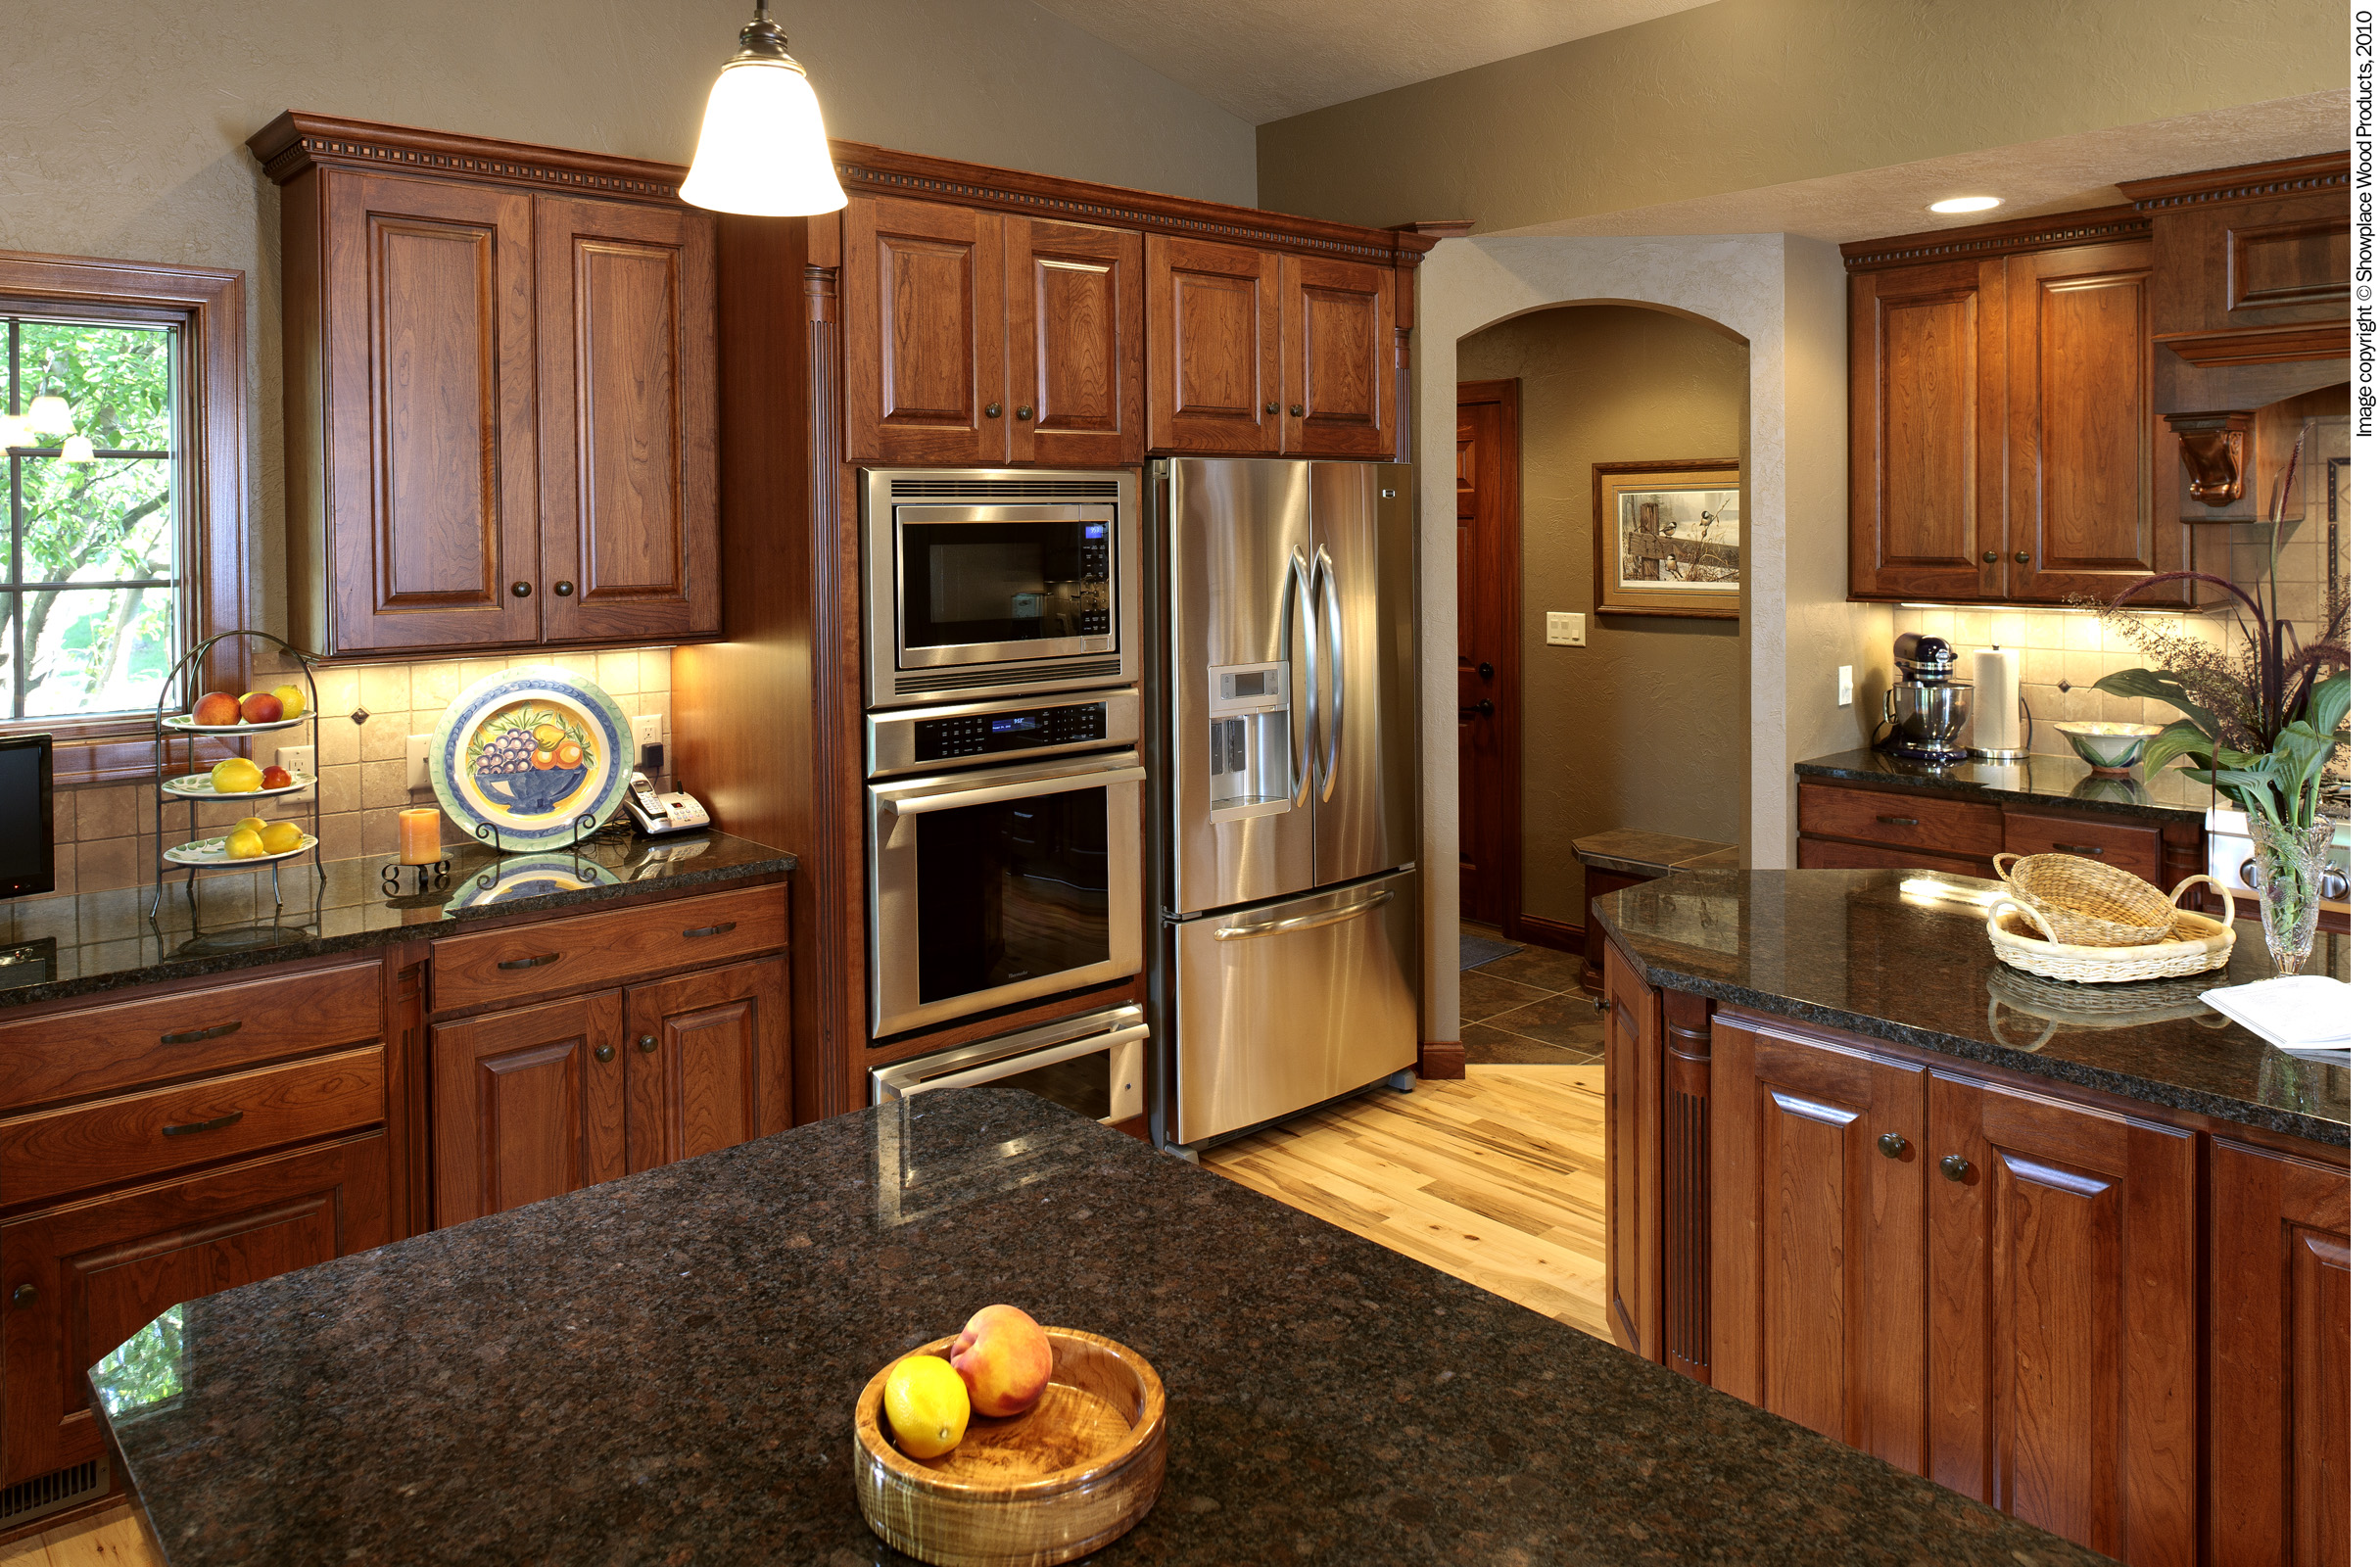 Showplace-kitchen